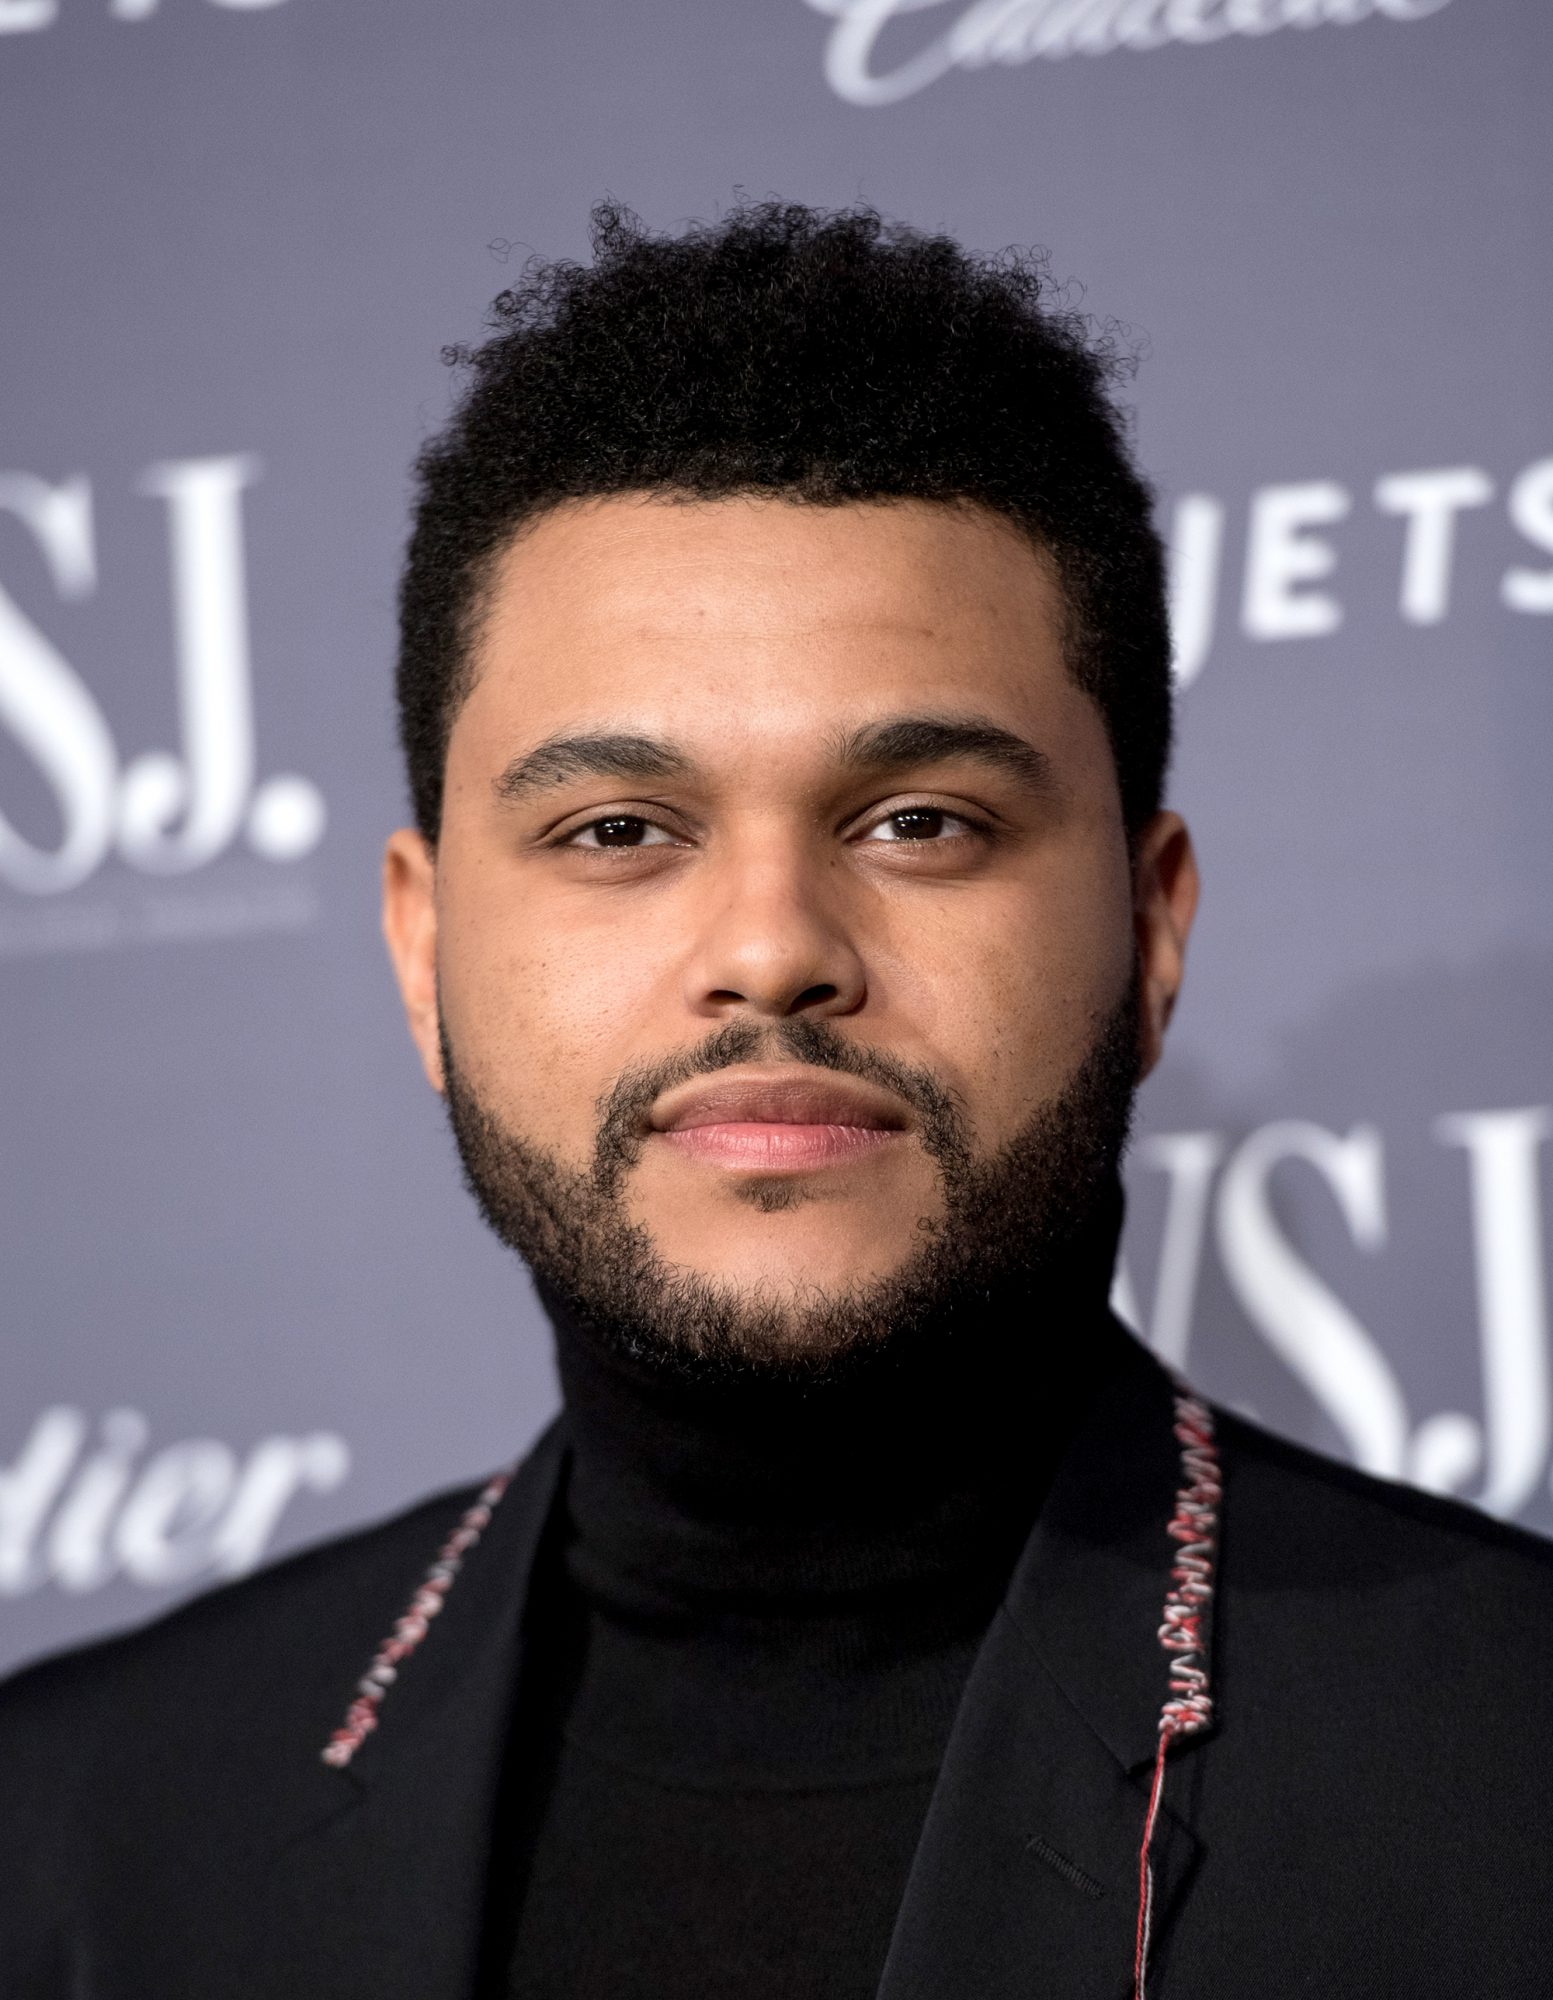 THE WEEKND ON USING DRUGS AS 'A CRUTCH'